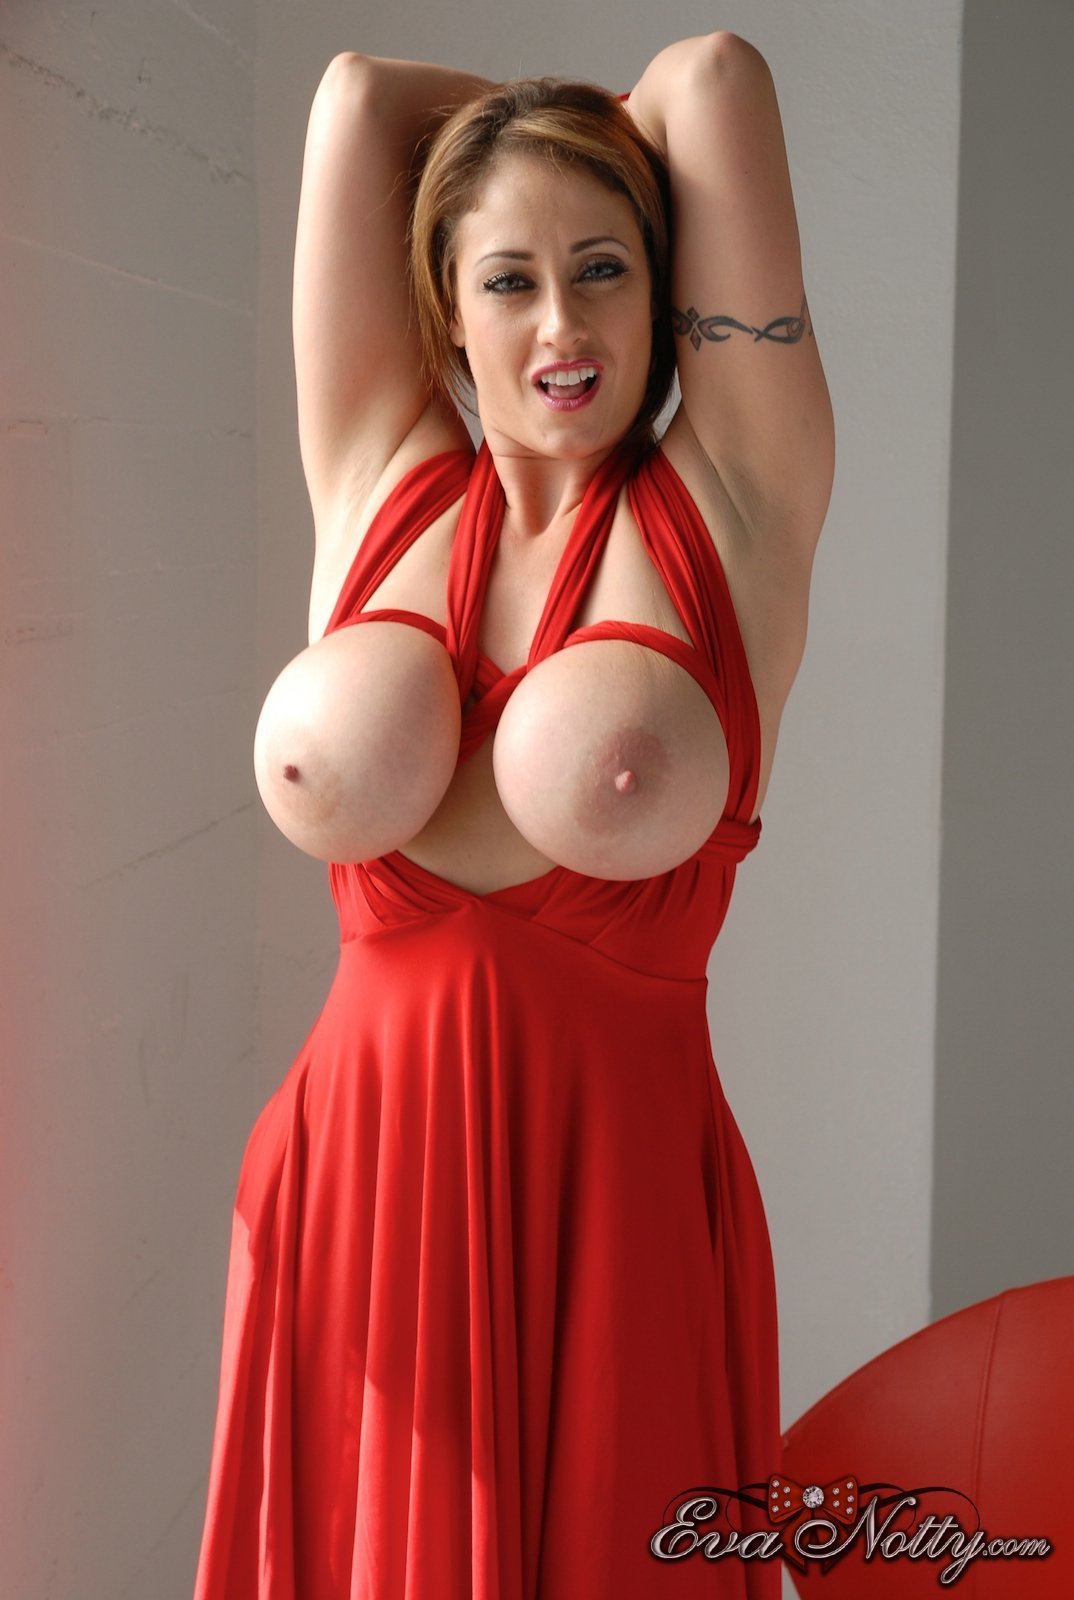 Thank big tits hanging out of tight dresses something is